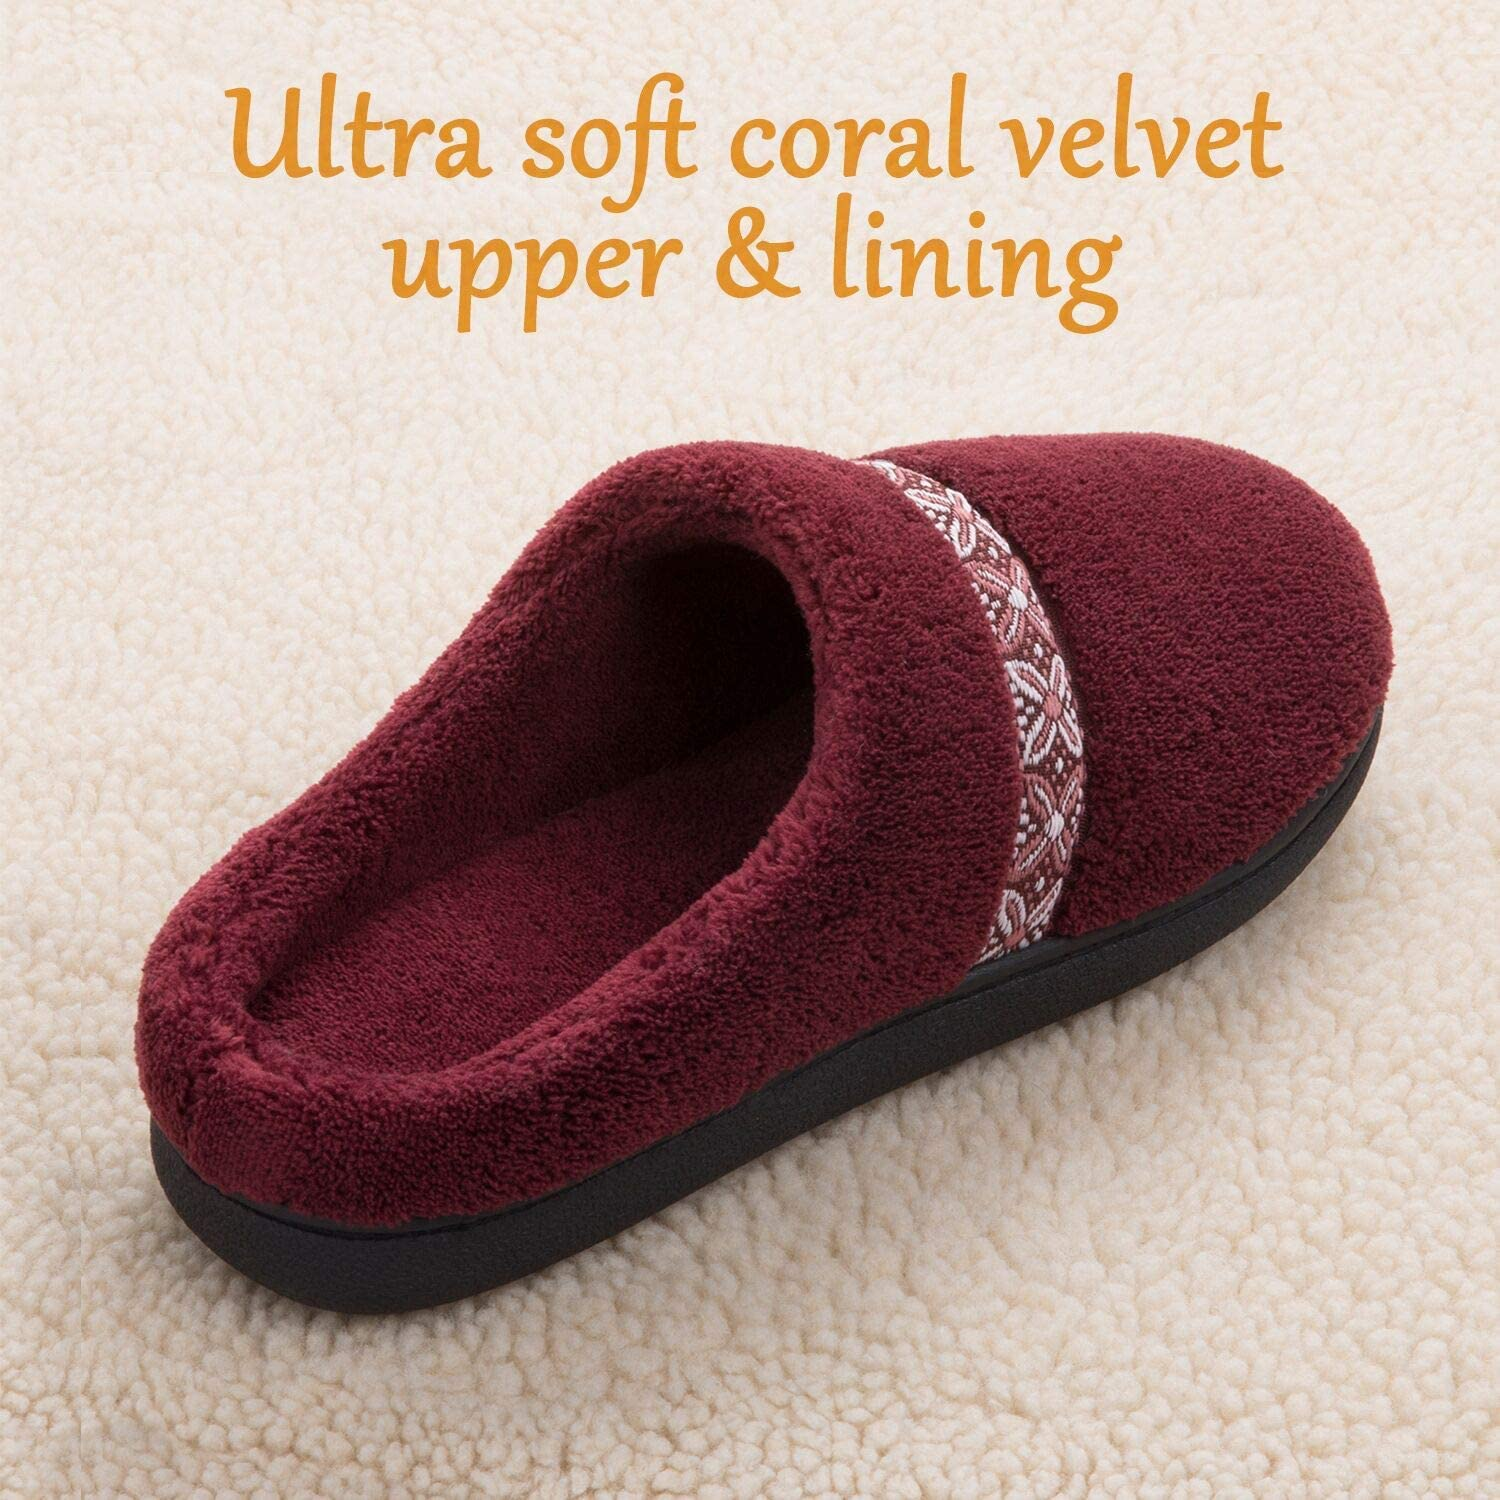 Comfy Coral Fleece Slip-on House Shoes with Anti-Skid Rubber Sole Indoor//Outdoor ULTRAIDEAS Women/'s Cozy Memory Foam Slippers